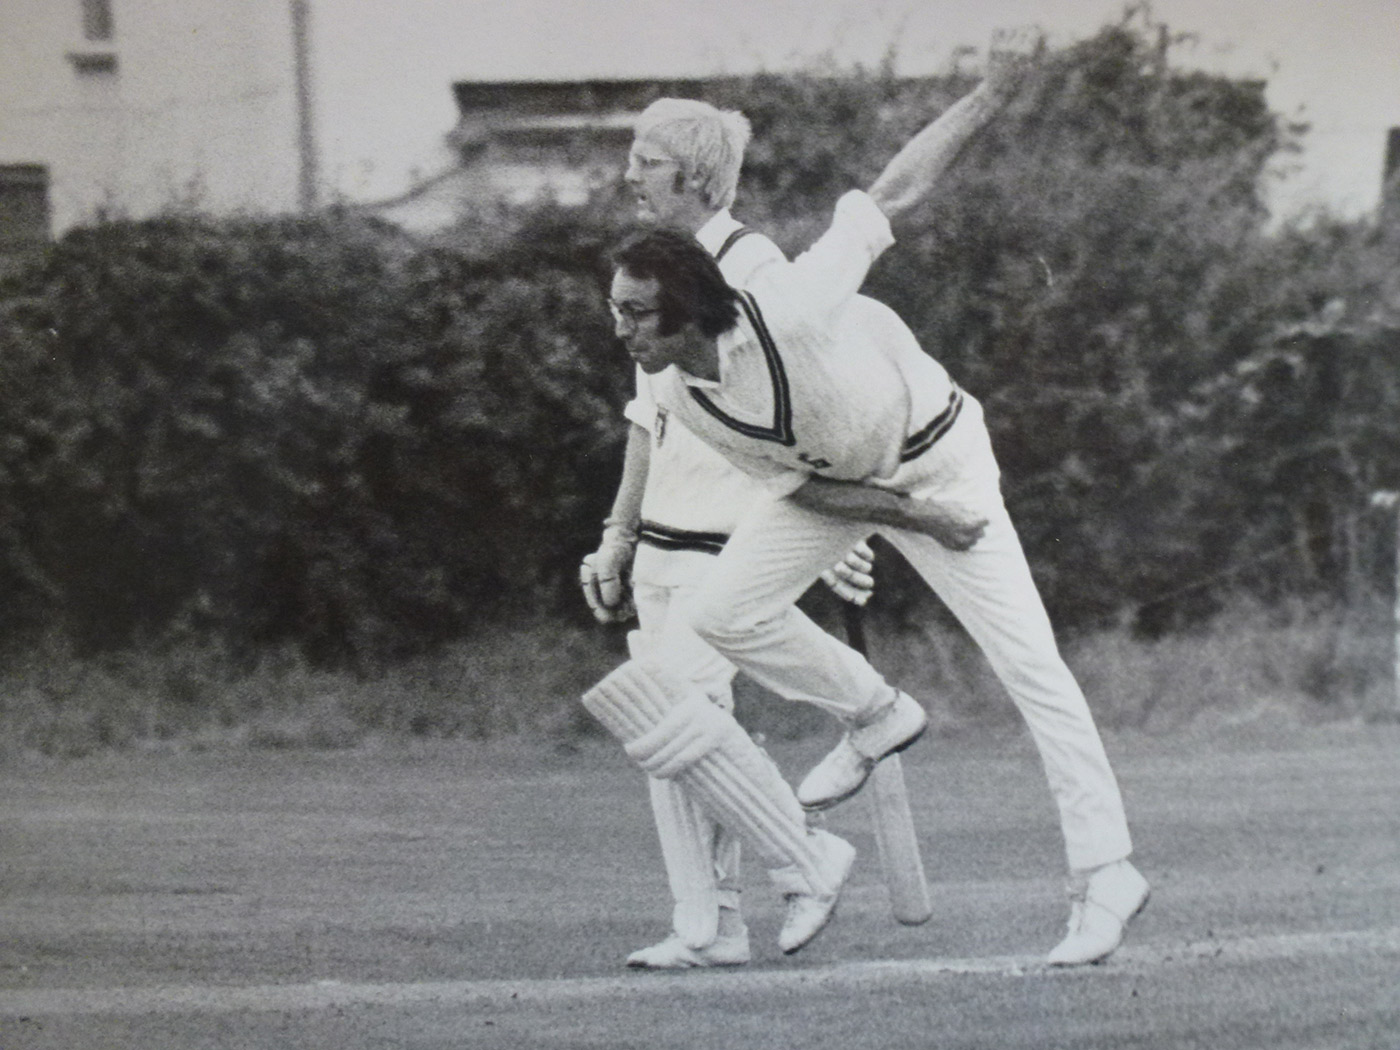 Brian Collins, who took four wickets for Minor Counties in their win against Australia in 1977